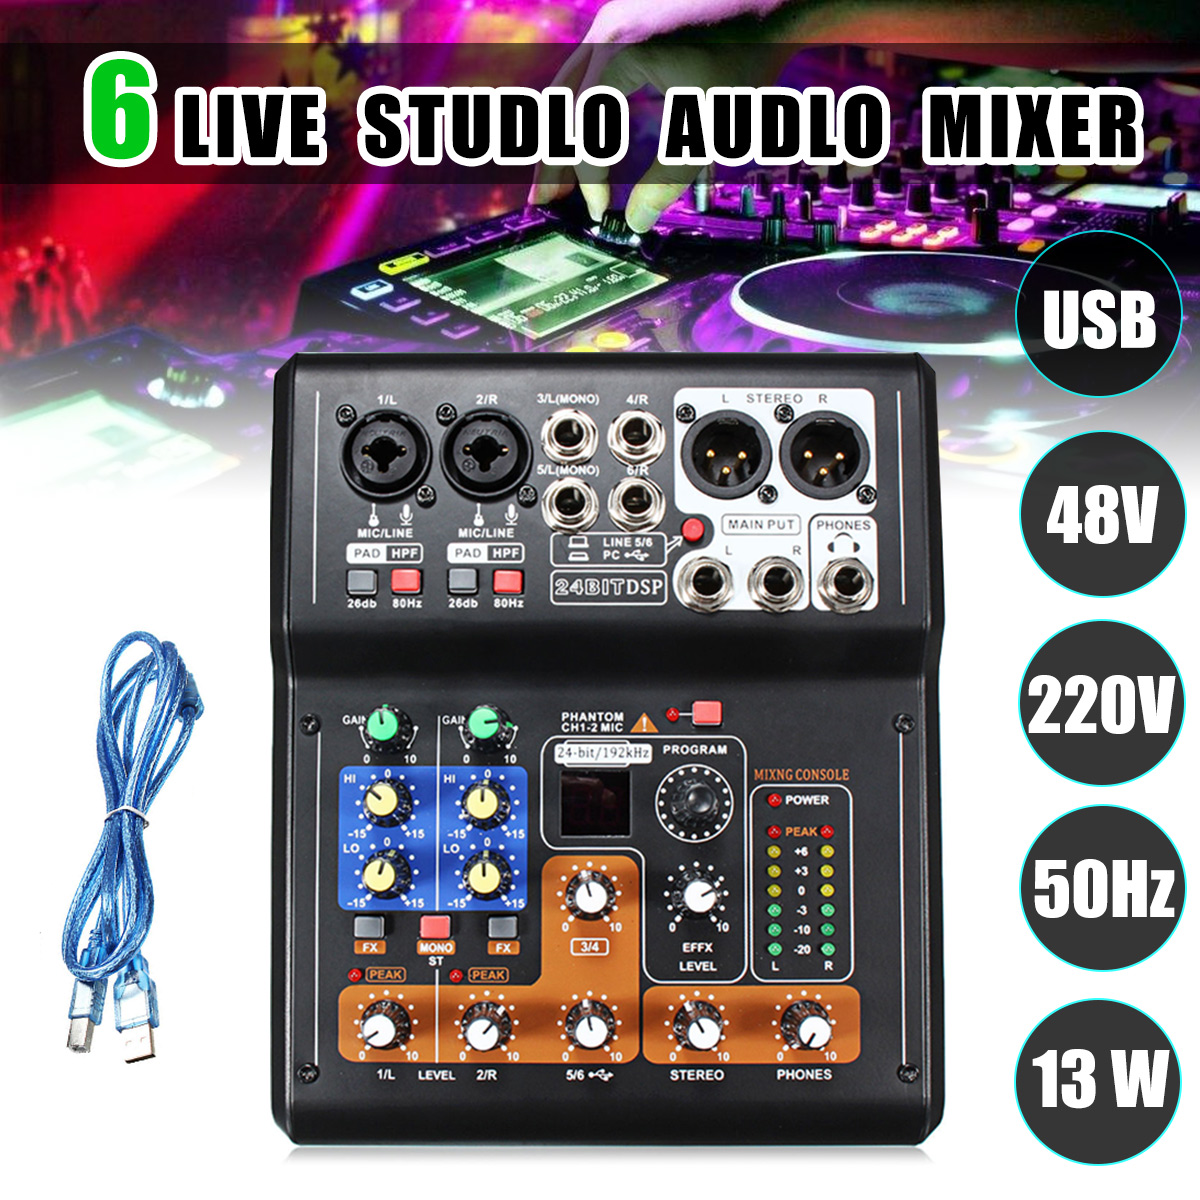 professional 6 channel live studio audio mixer phantom console mini usb amplifier digital mic. Black Bedroom Furniture Sets. Home Design Ideas